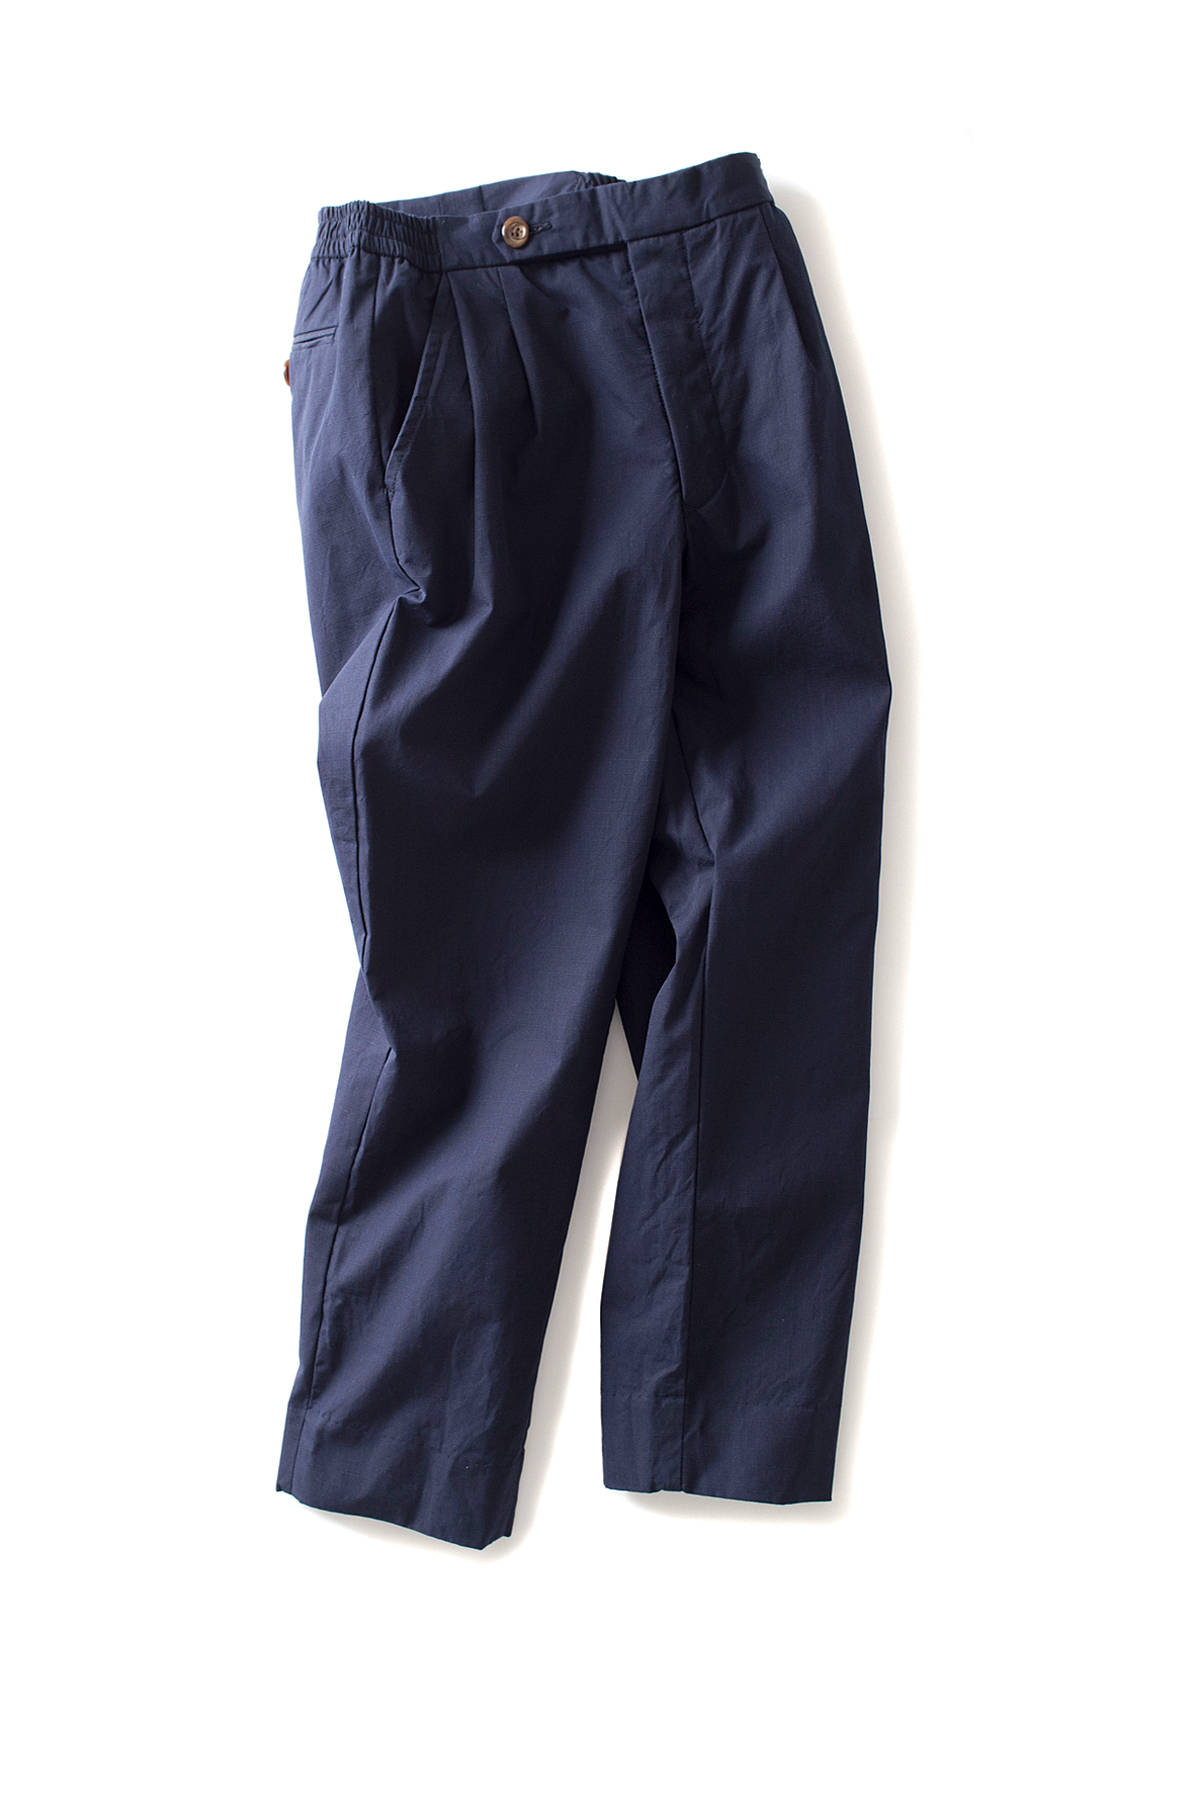 ohh! nisica : Ripstop Easy Pants (Navy)